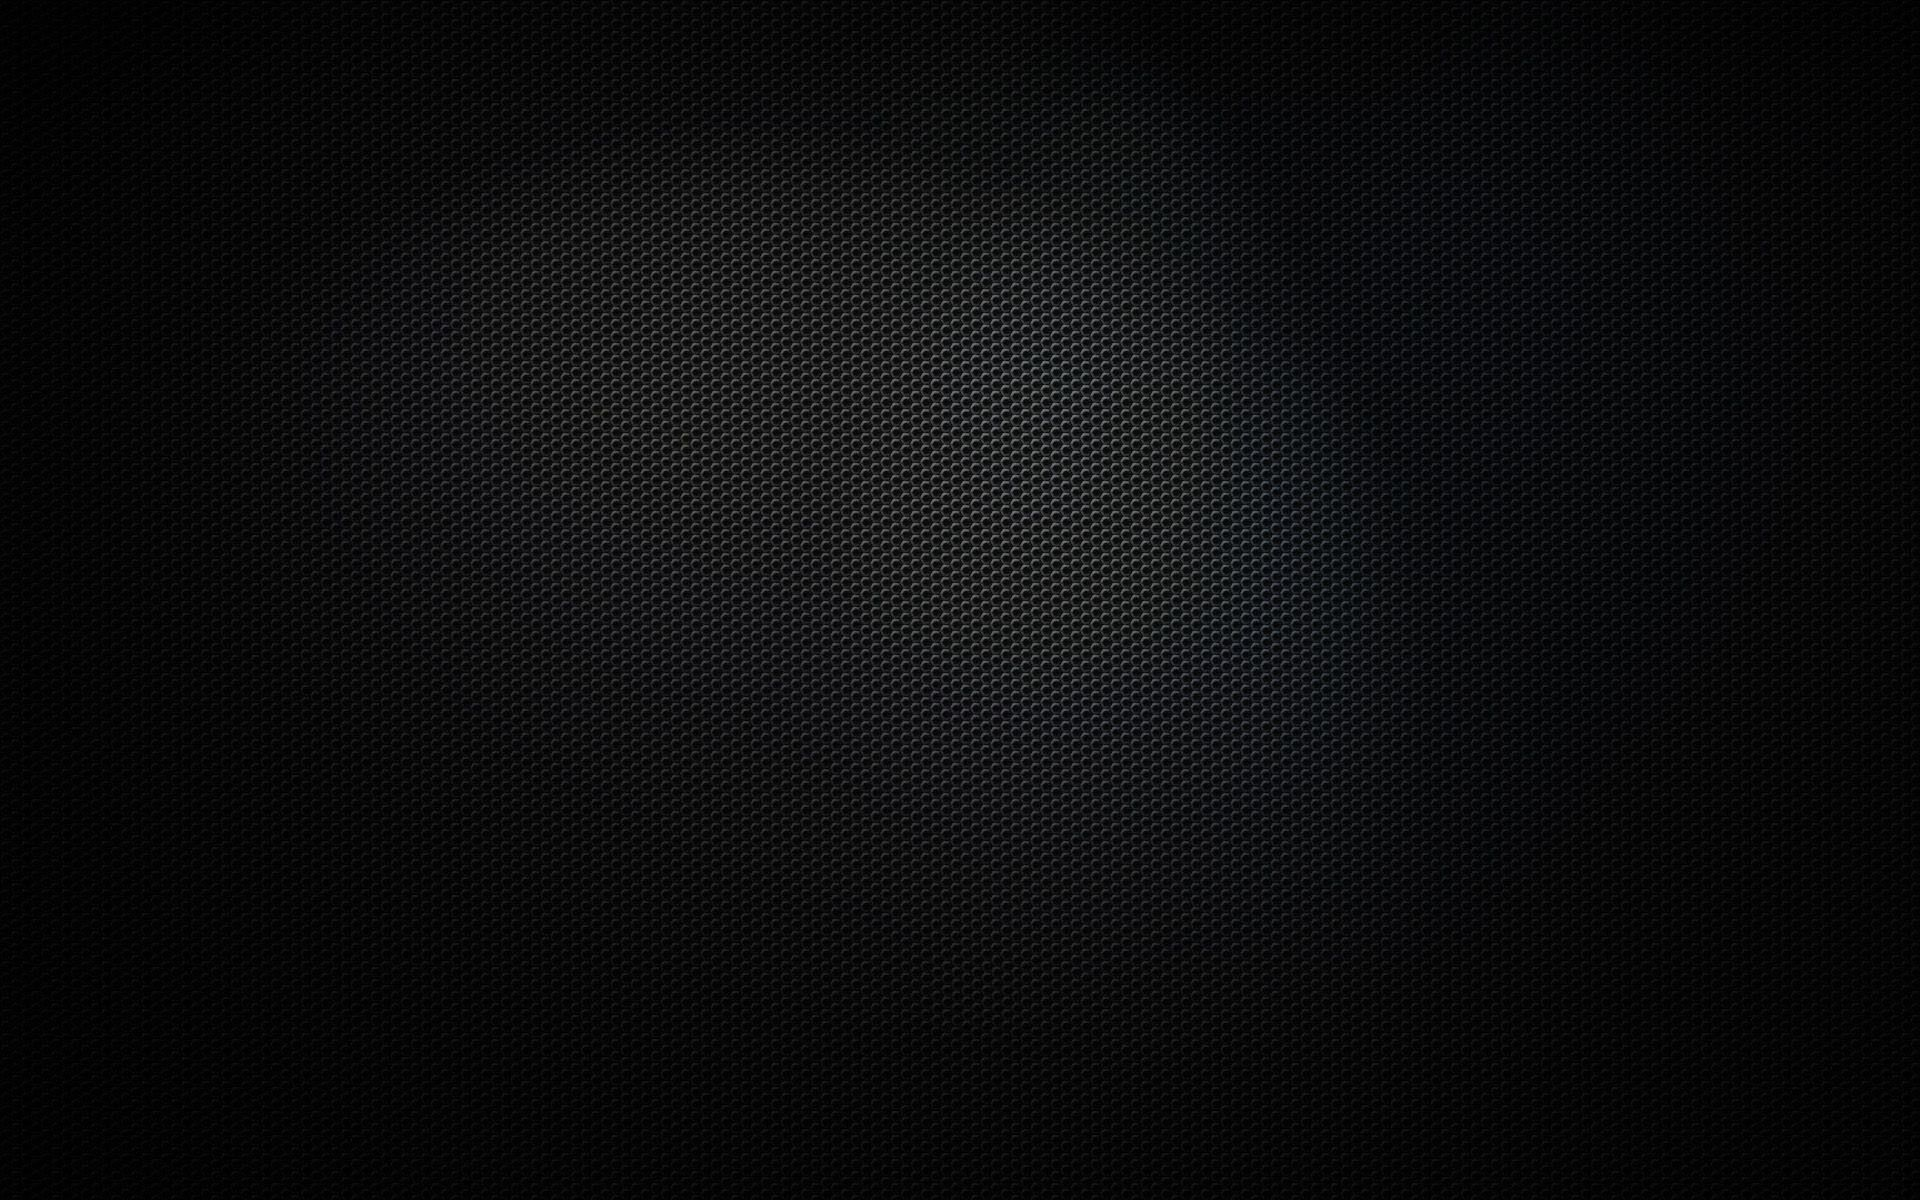 Dark Abstract Wallpapers Top Free Dark Abstract Backgrounds Wallpaperaccess